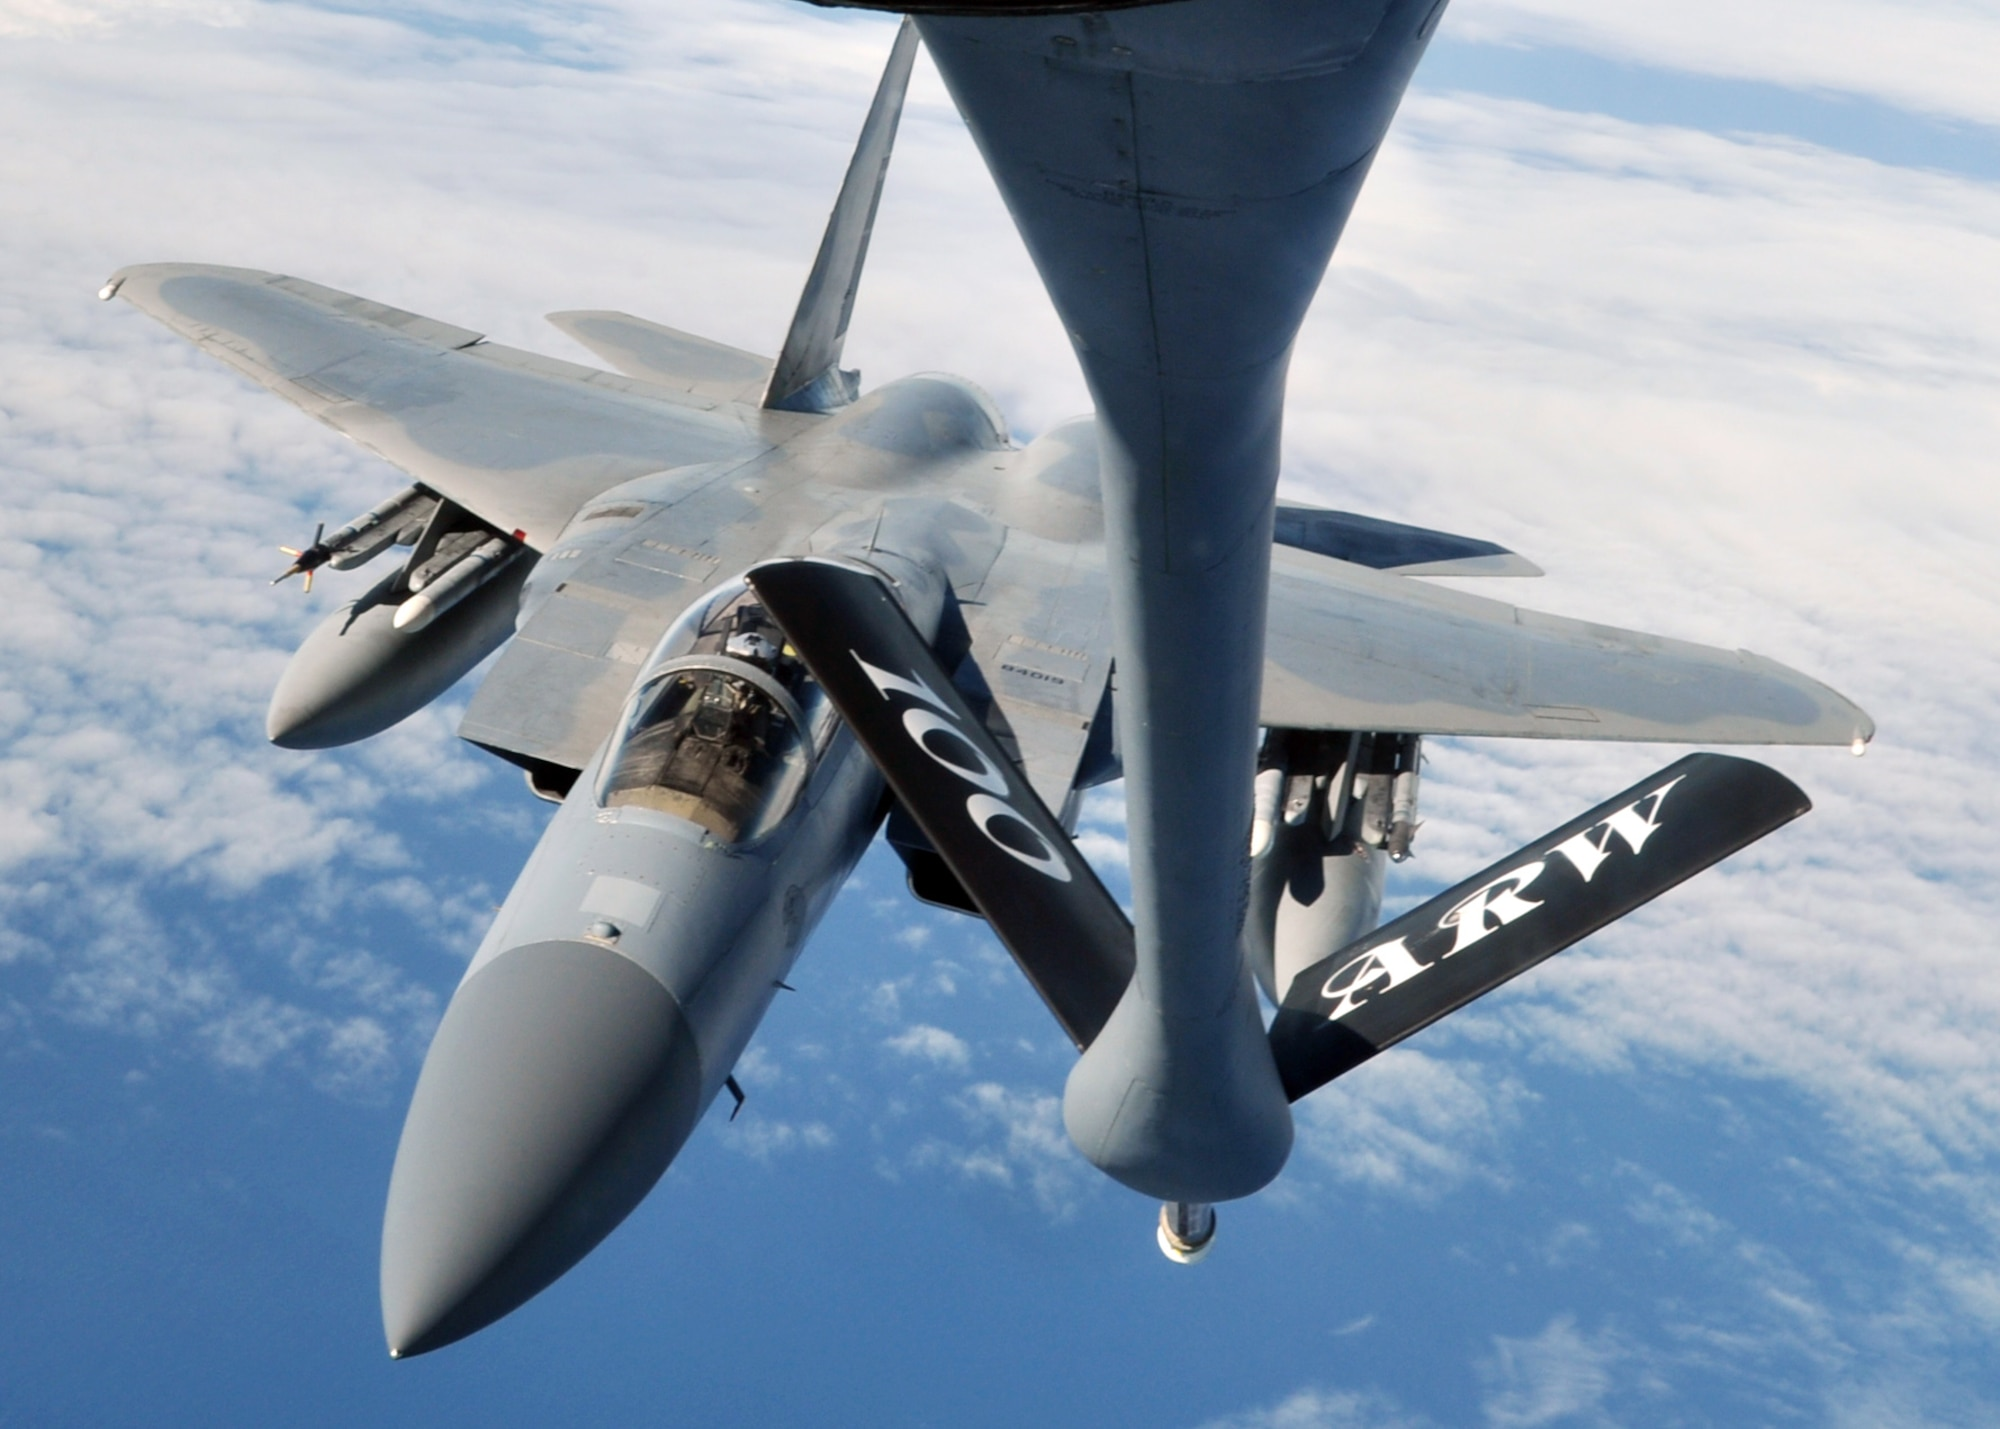 A U.S. Air Force F-15C Eagle finishes refueling with a U.S. Air Force KC-135R Stratotanker Sept. 12, 2013, en route to the Arctic Challenge exercise. The F-15C, in coordination with fighters from Norway, Sweden, Finland and the U.K., provided the air-to-air attack element in many of the scenarios during the exercise.